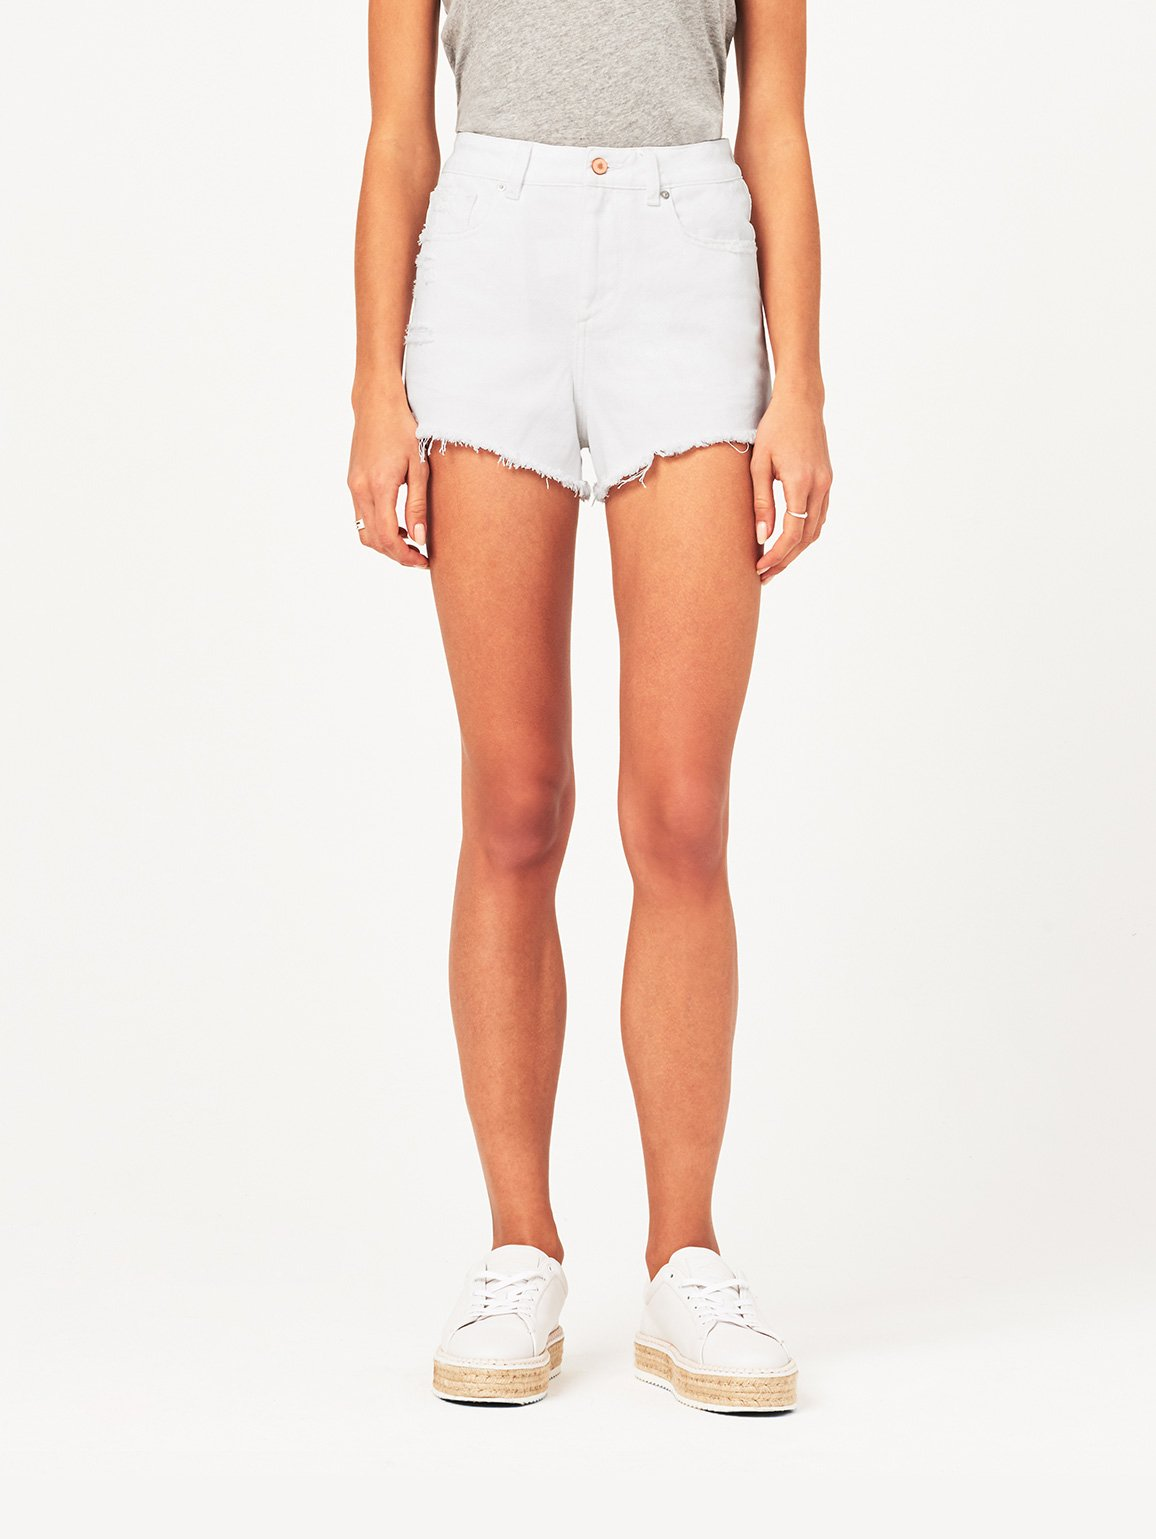 Image of Cleo High Rise Short / Glorious